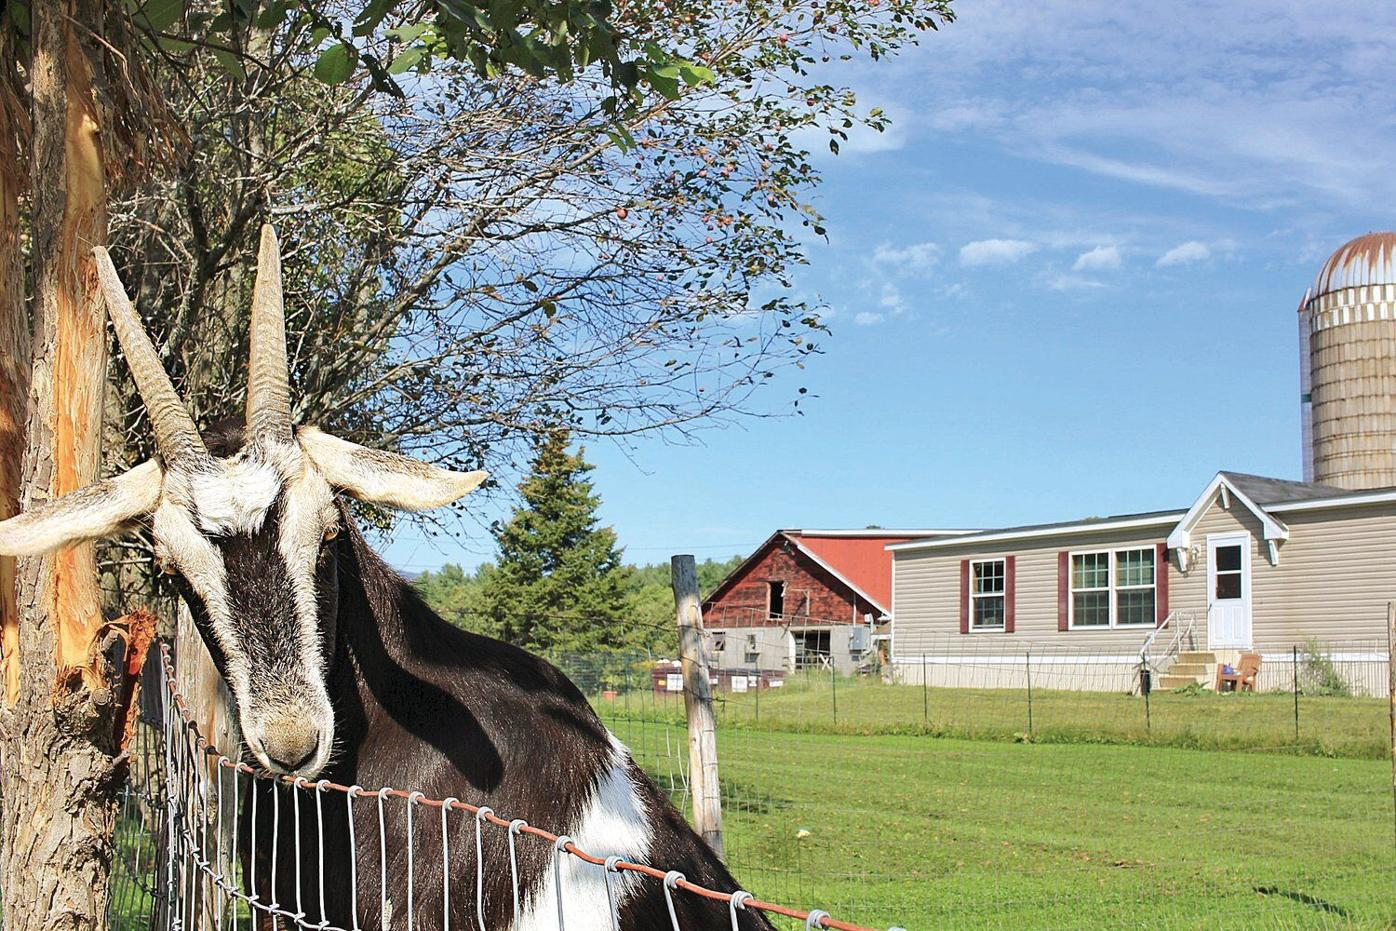 From Adversity To Prosperity North Meadow Farm Grew From Bucket List Item To Dream Come True Entertainment Benningtonbanner Com